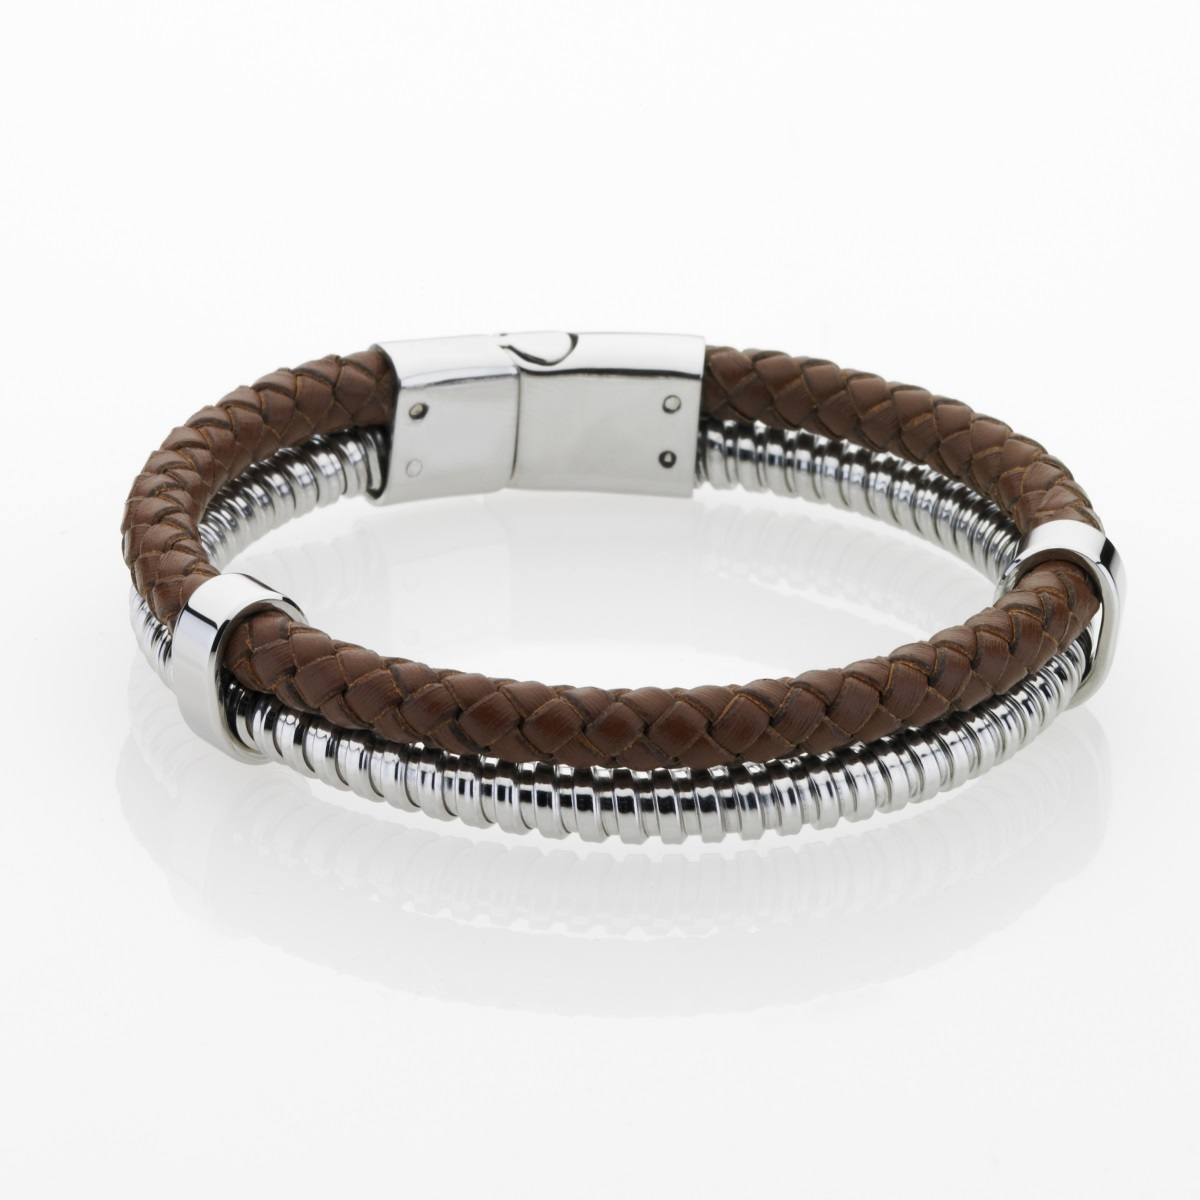 Plyro Bracelet - Brown